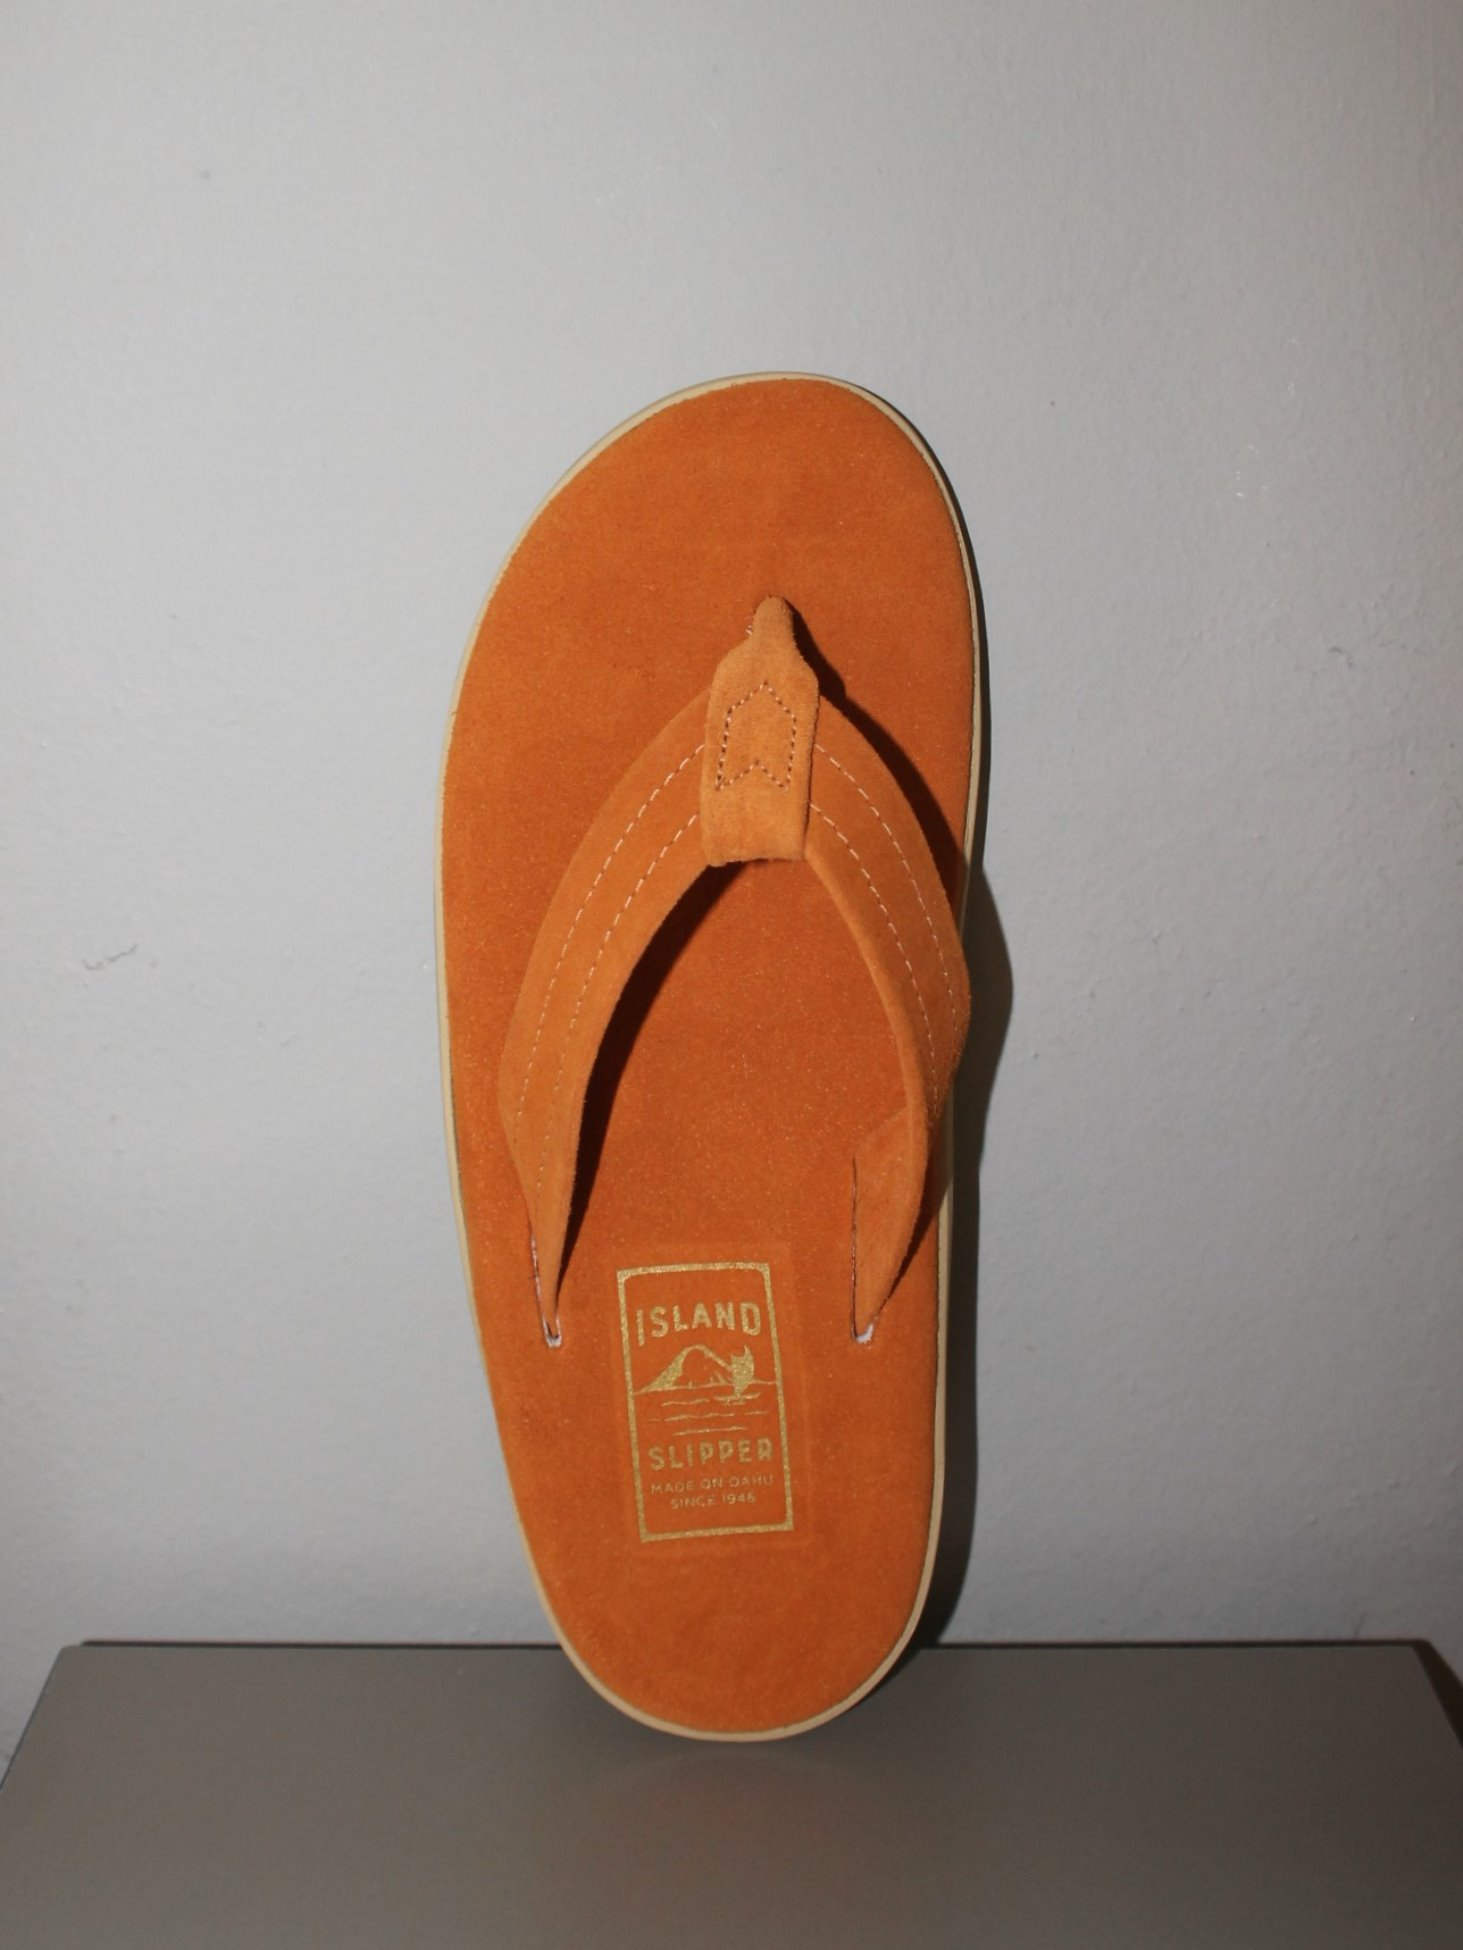 [ISLAND SLIPPER] PT203 (Orange)